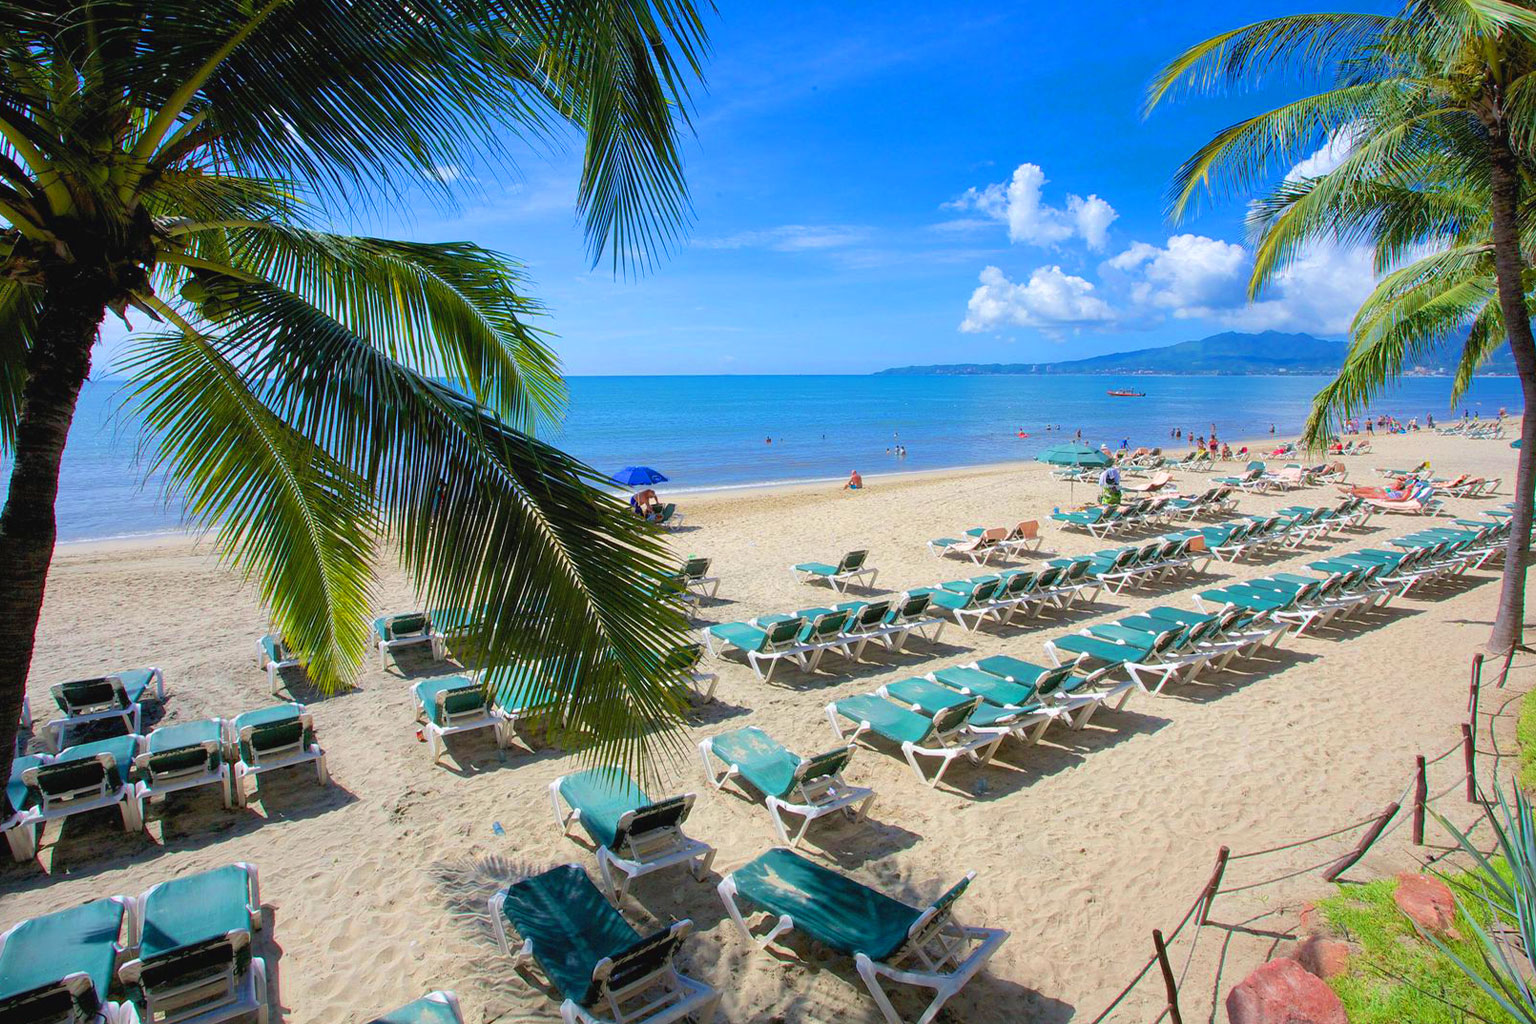 Plage Mexicaine